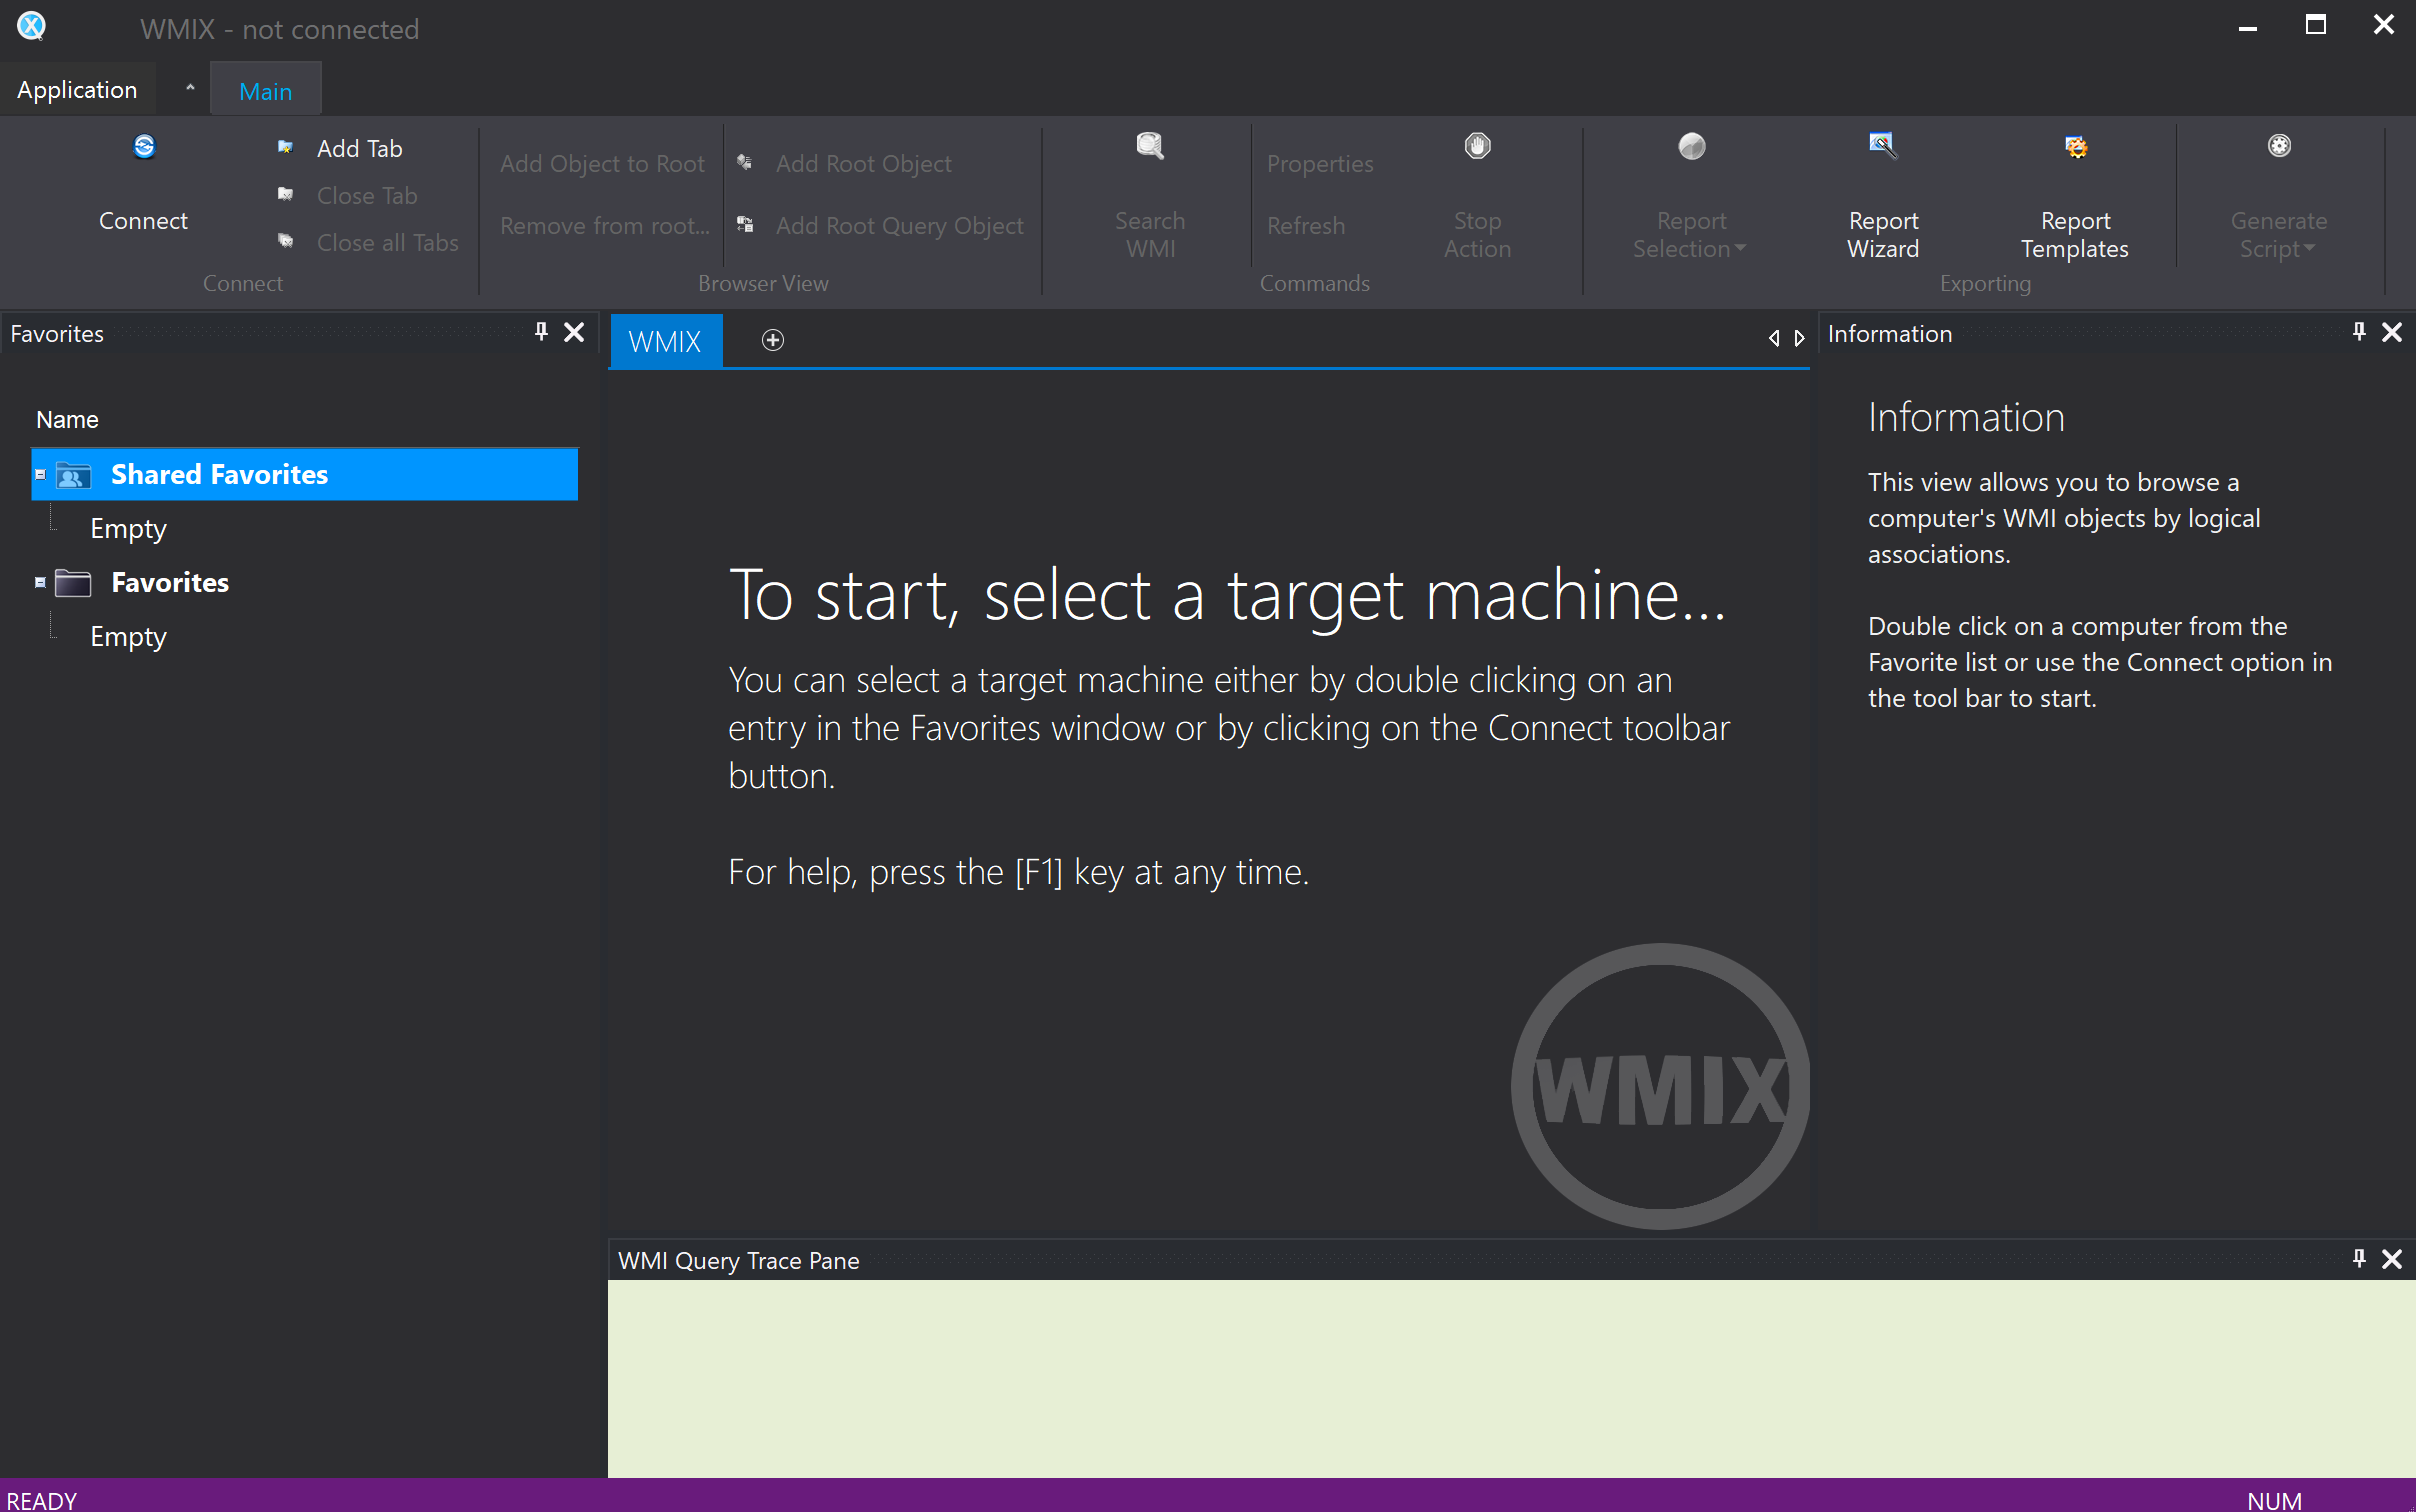 WMIX - Getting Started with Goverlan's WMI Explorer